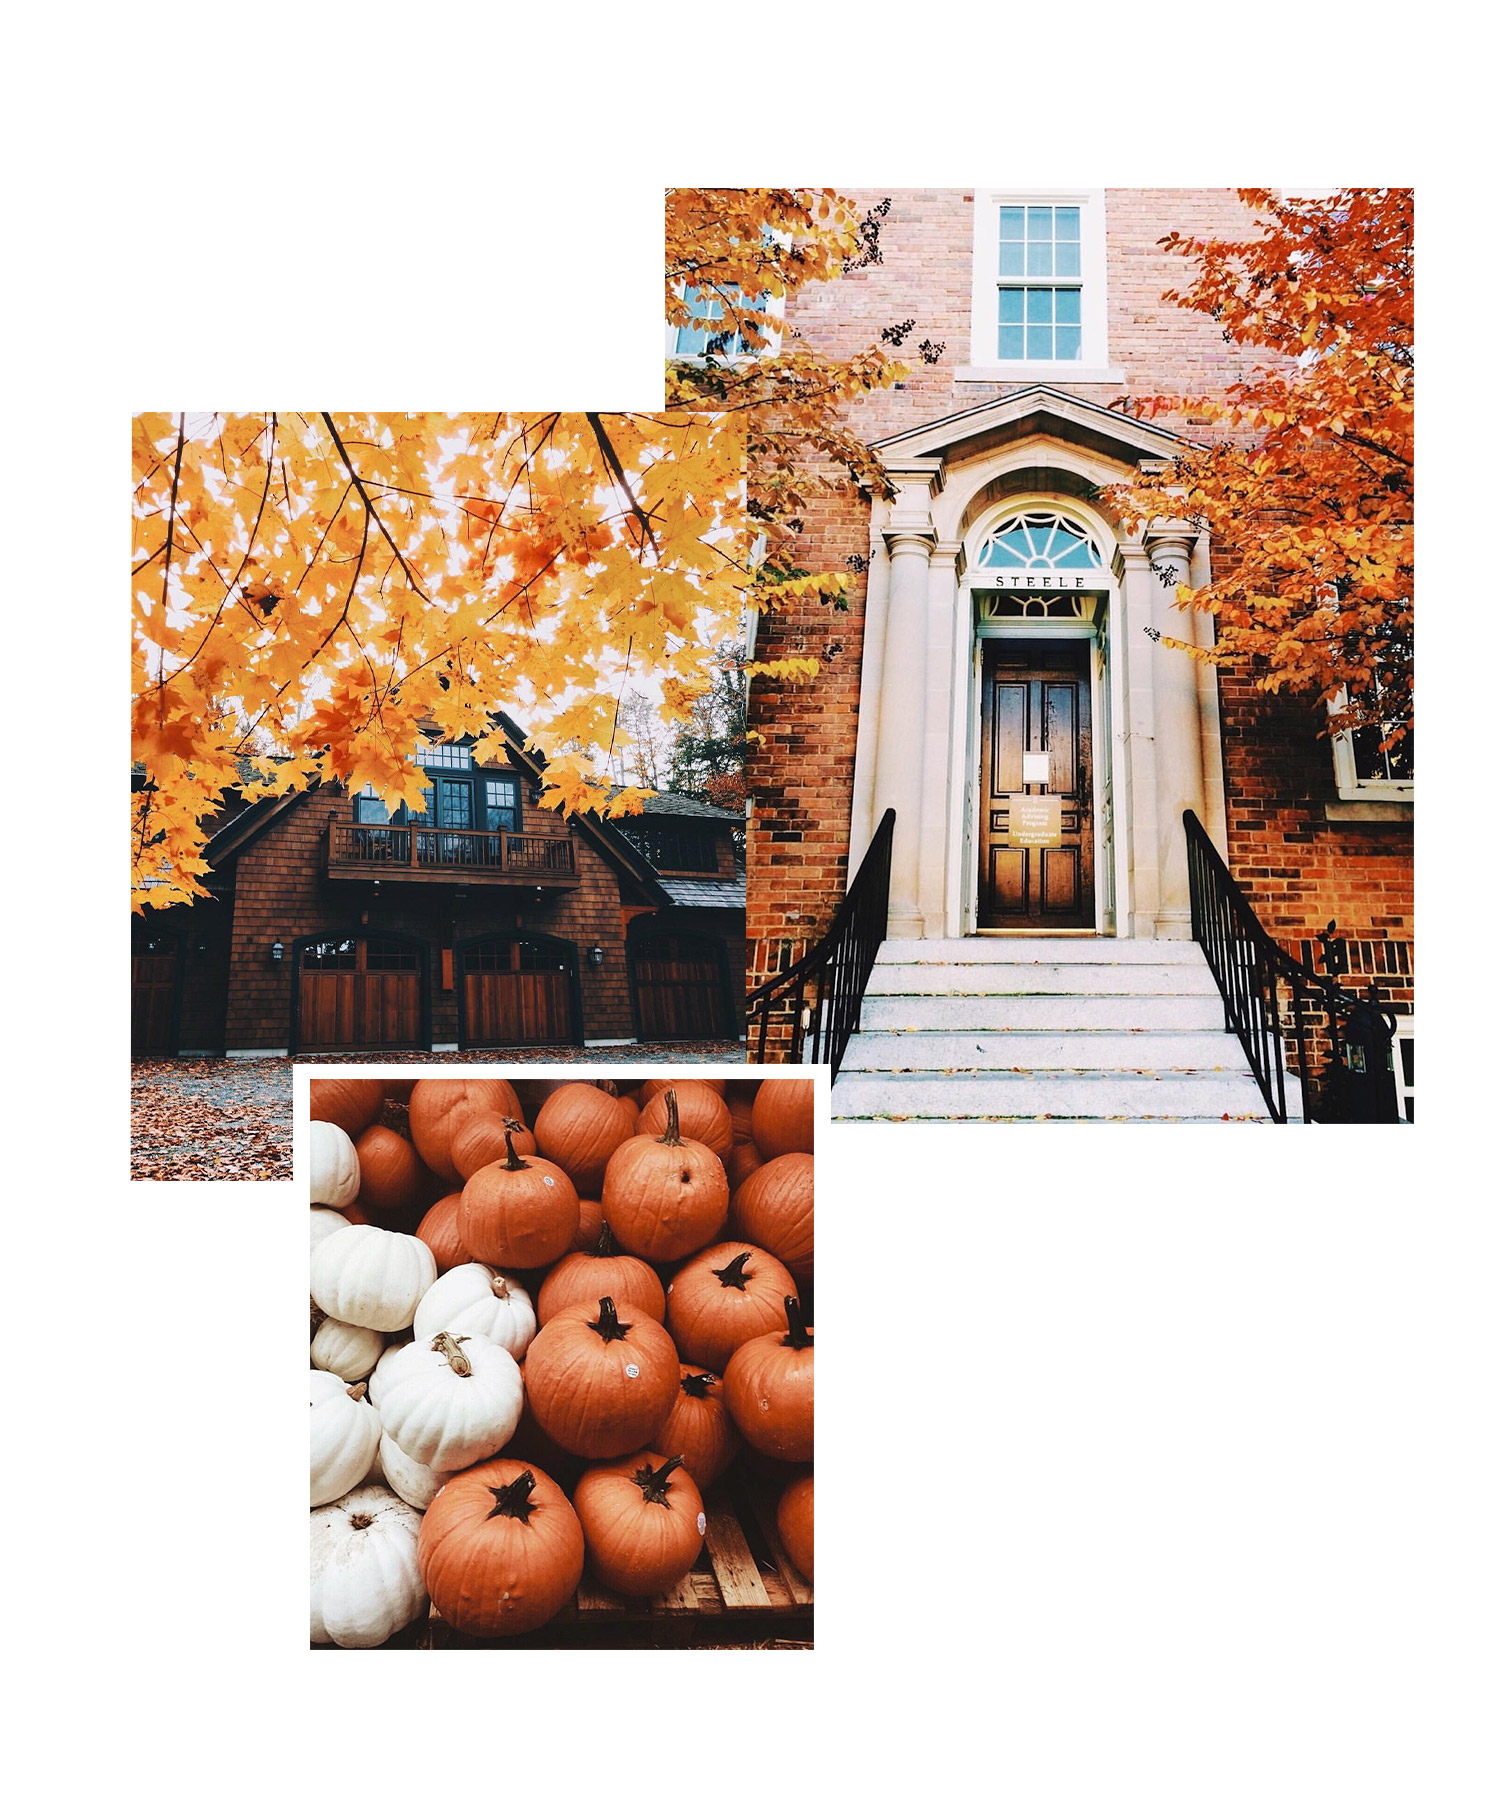 1. haunting.autumn - This account will give you autumnal inspiration all year round. The orange and brown toned photos are full of pumpkins, cinnamon rolls and classic autumnal landscapes. This really is the perfect place to find inspiration for your home this autumn. Follow here: haunting.autumn